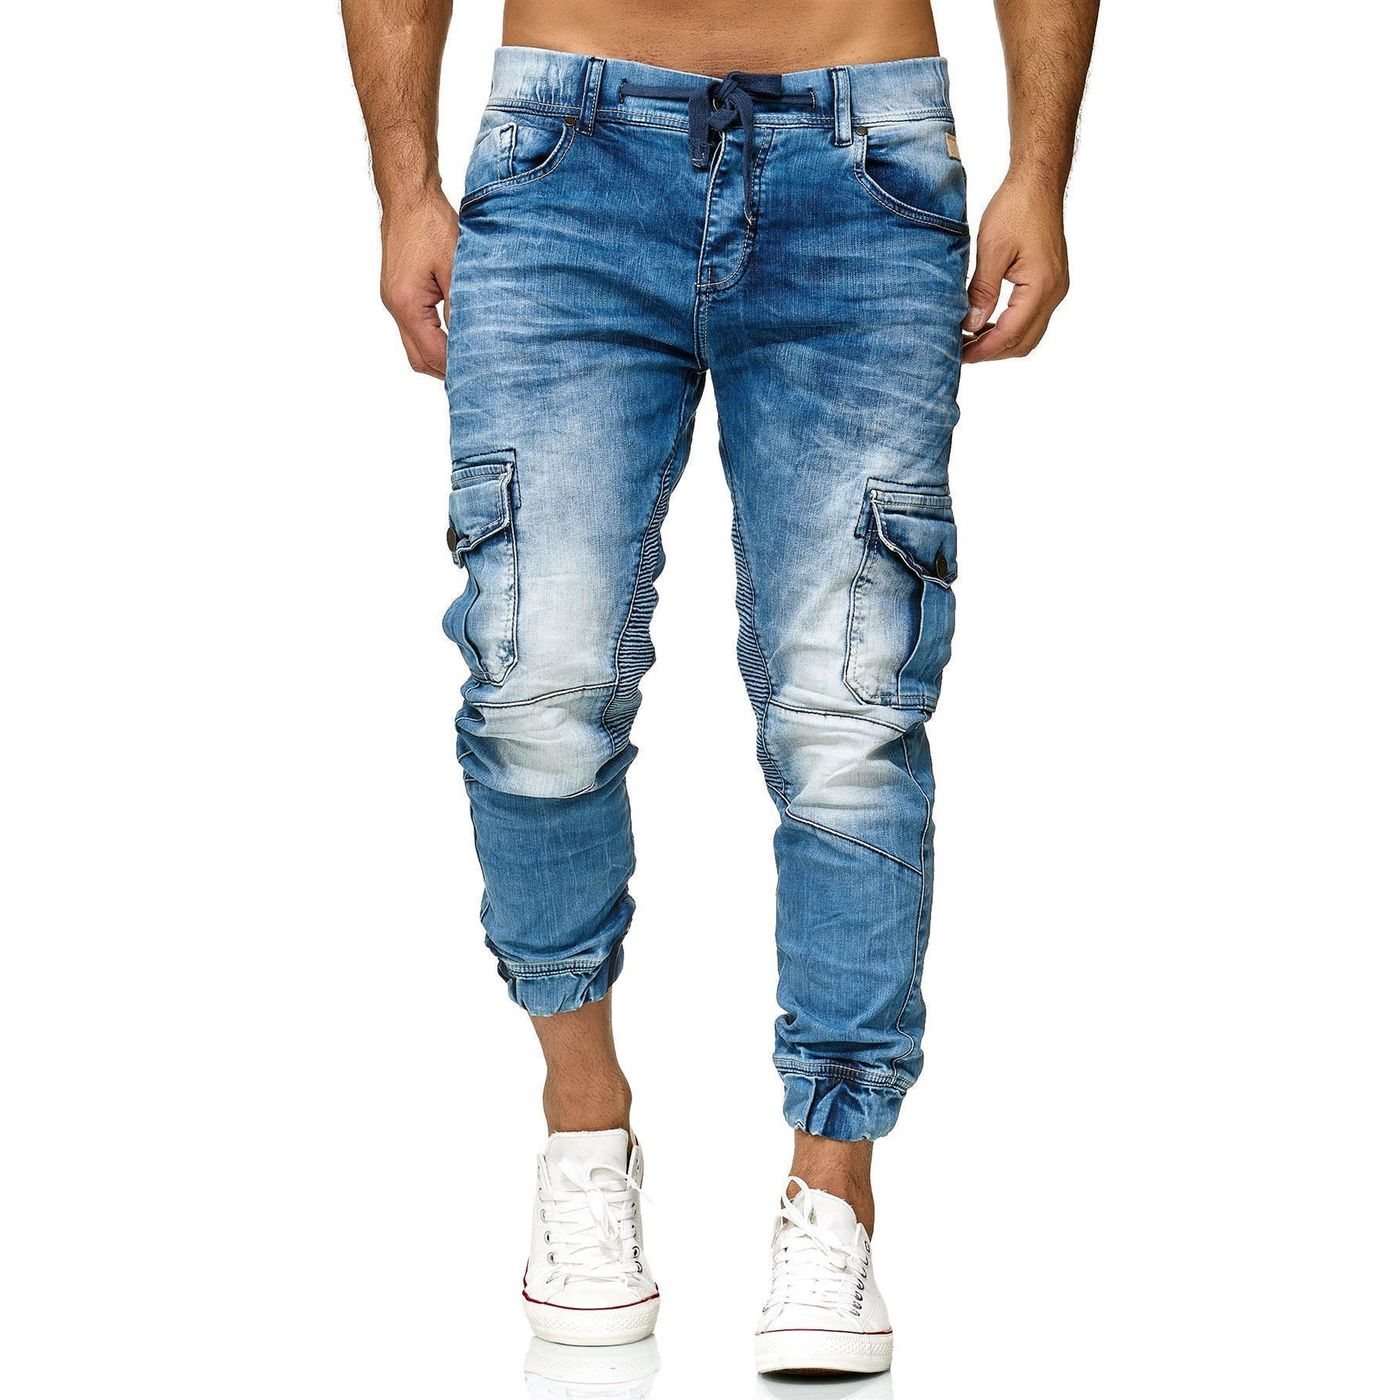 6cdc07c4d1b109 Red Bridge Mens Joggers Denim Jeans Pants Cargo Pants Narrow Leg Jeans Slim  Leg